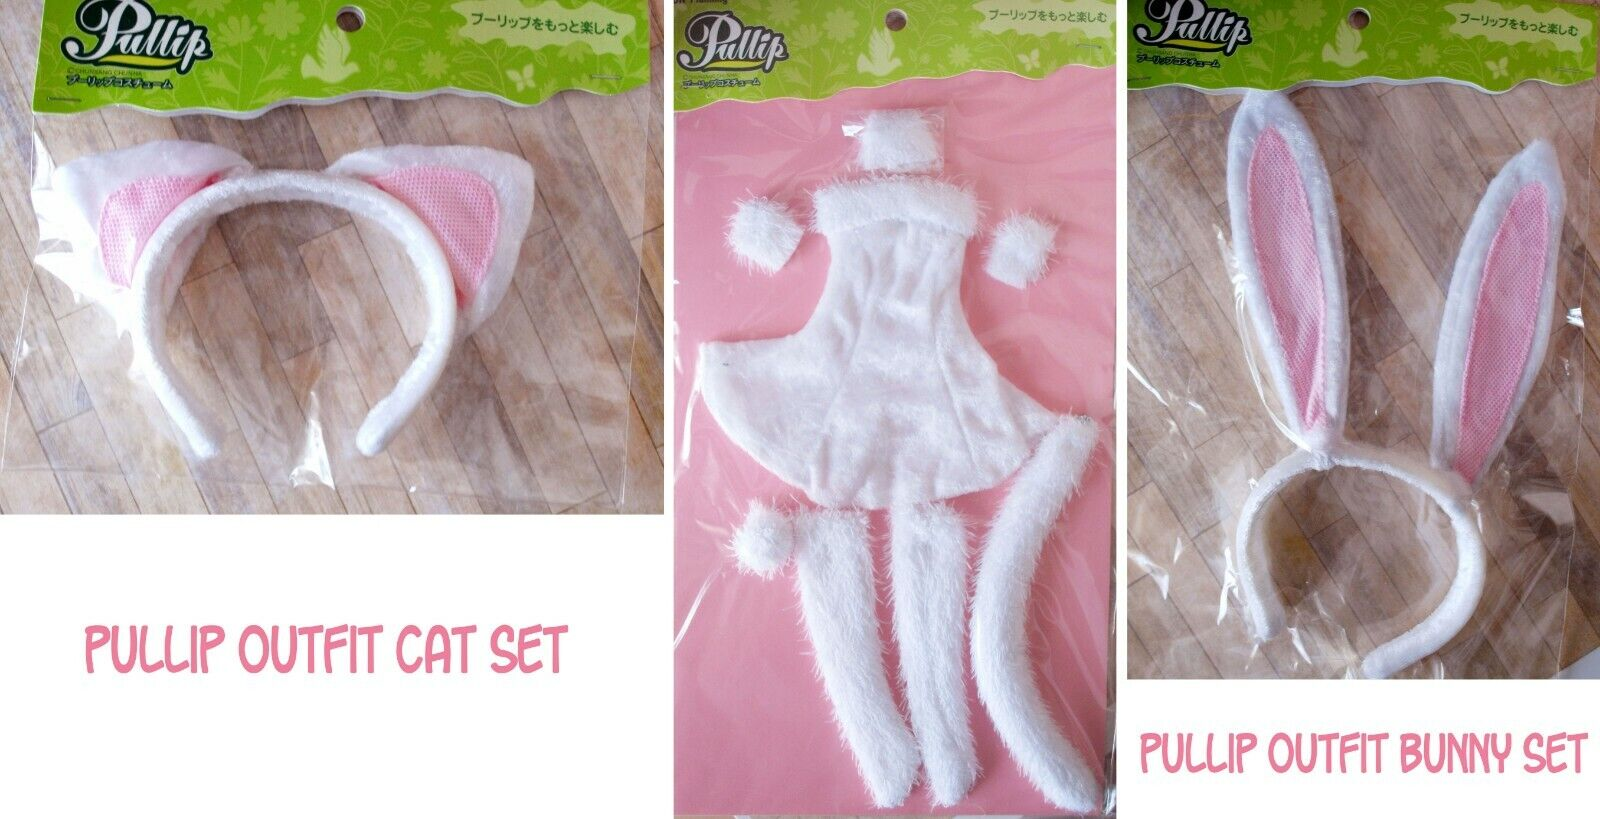 Pullip Outfit Cothes blanc cat dress + bunny ears set Series Summer Collection